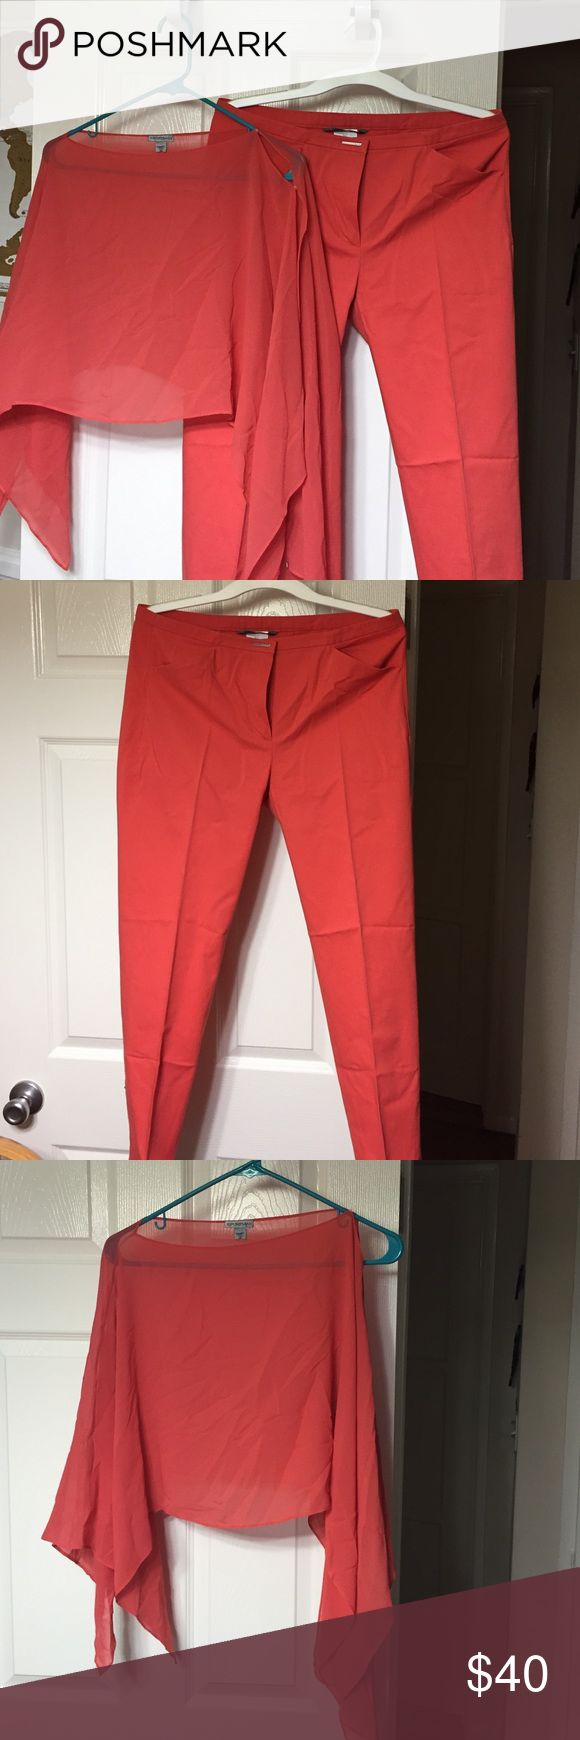 Coral pants with matching coral shoulder top Would go perfectly with  a white cami to break up the coral. Great for a weekend outfit or lunching with the ladies. Italian made and only worn once. From the sports line of Maxmara Sportmax  Pants Trousers